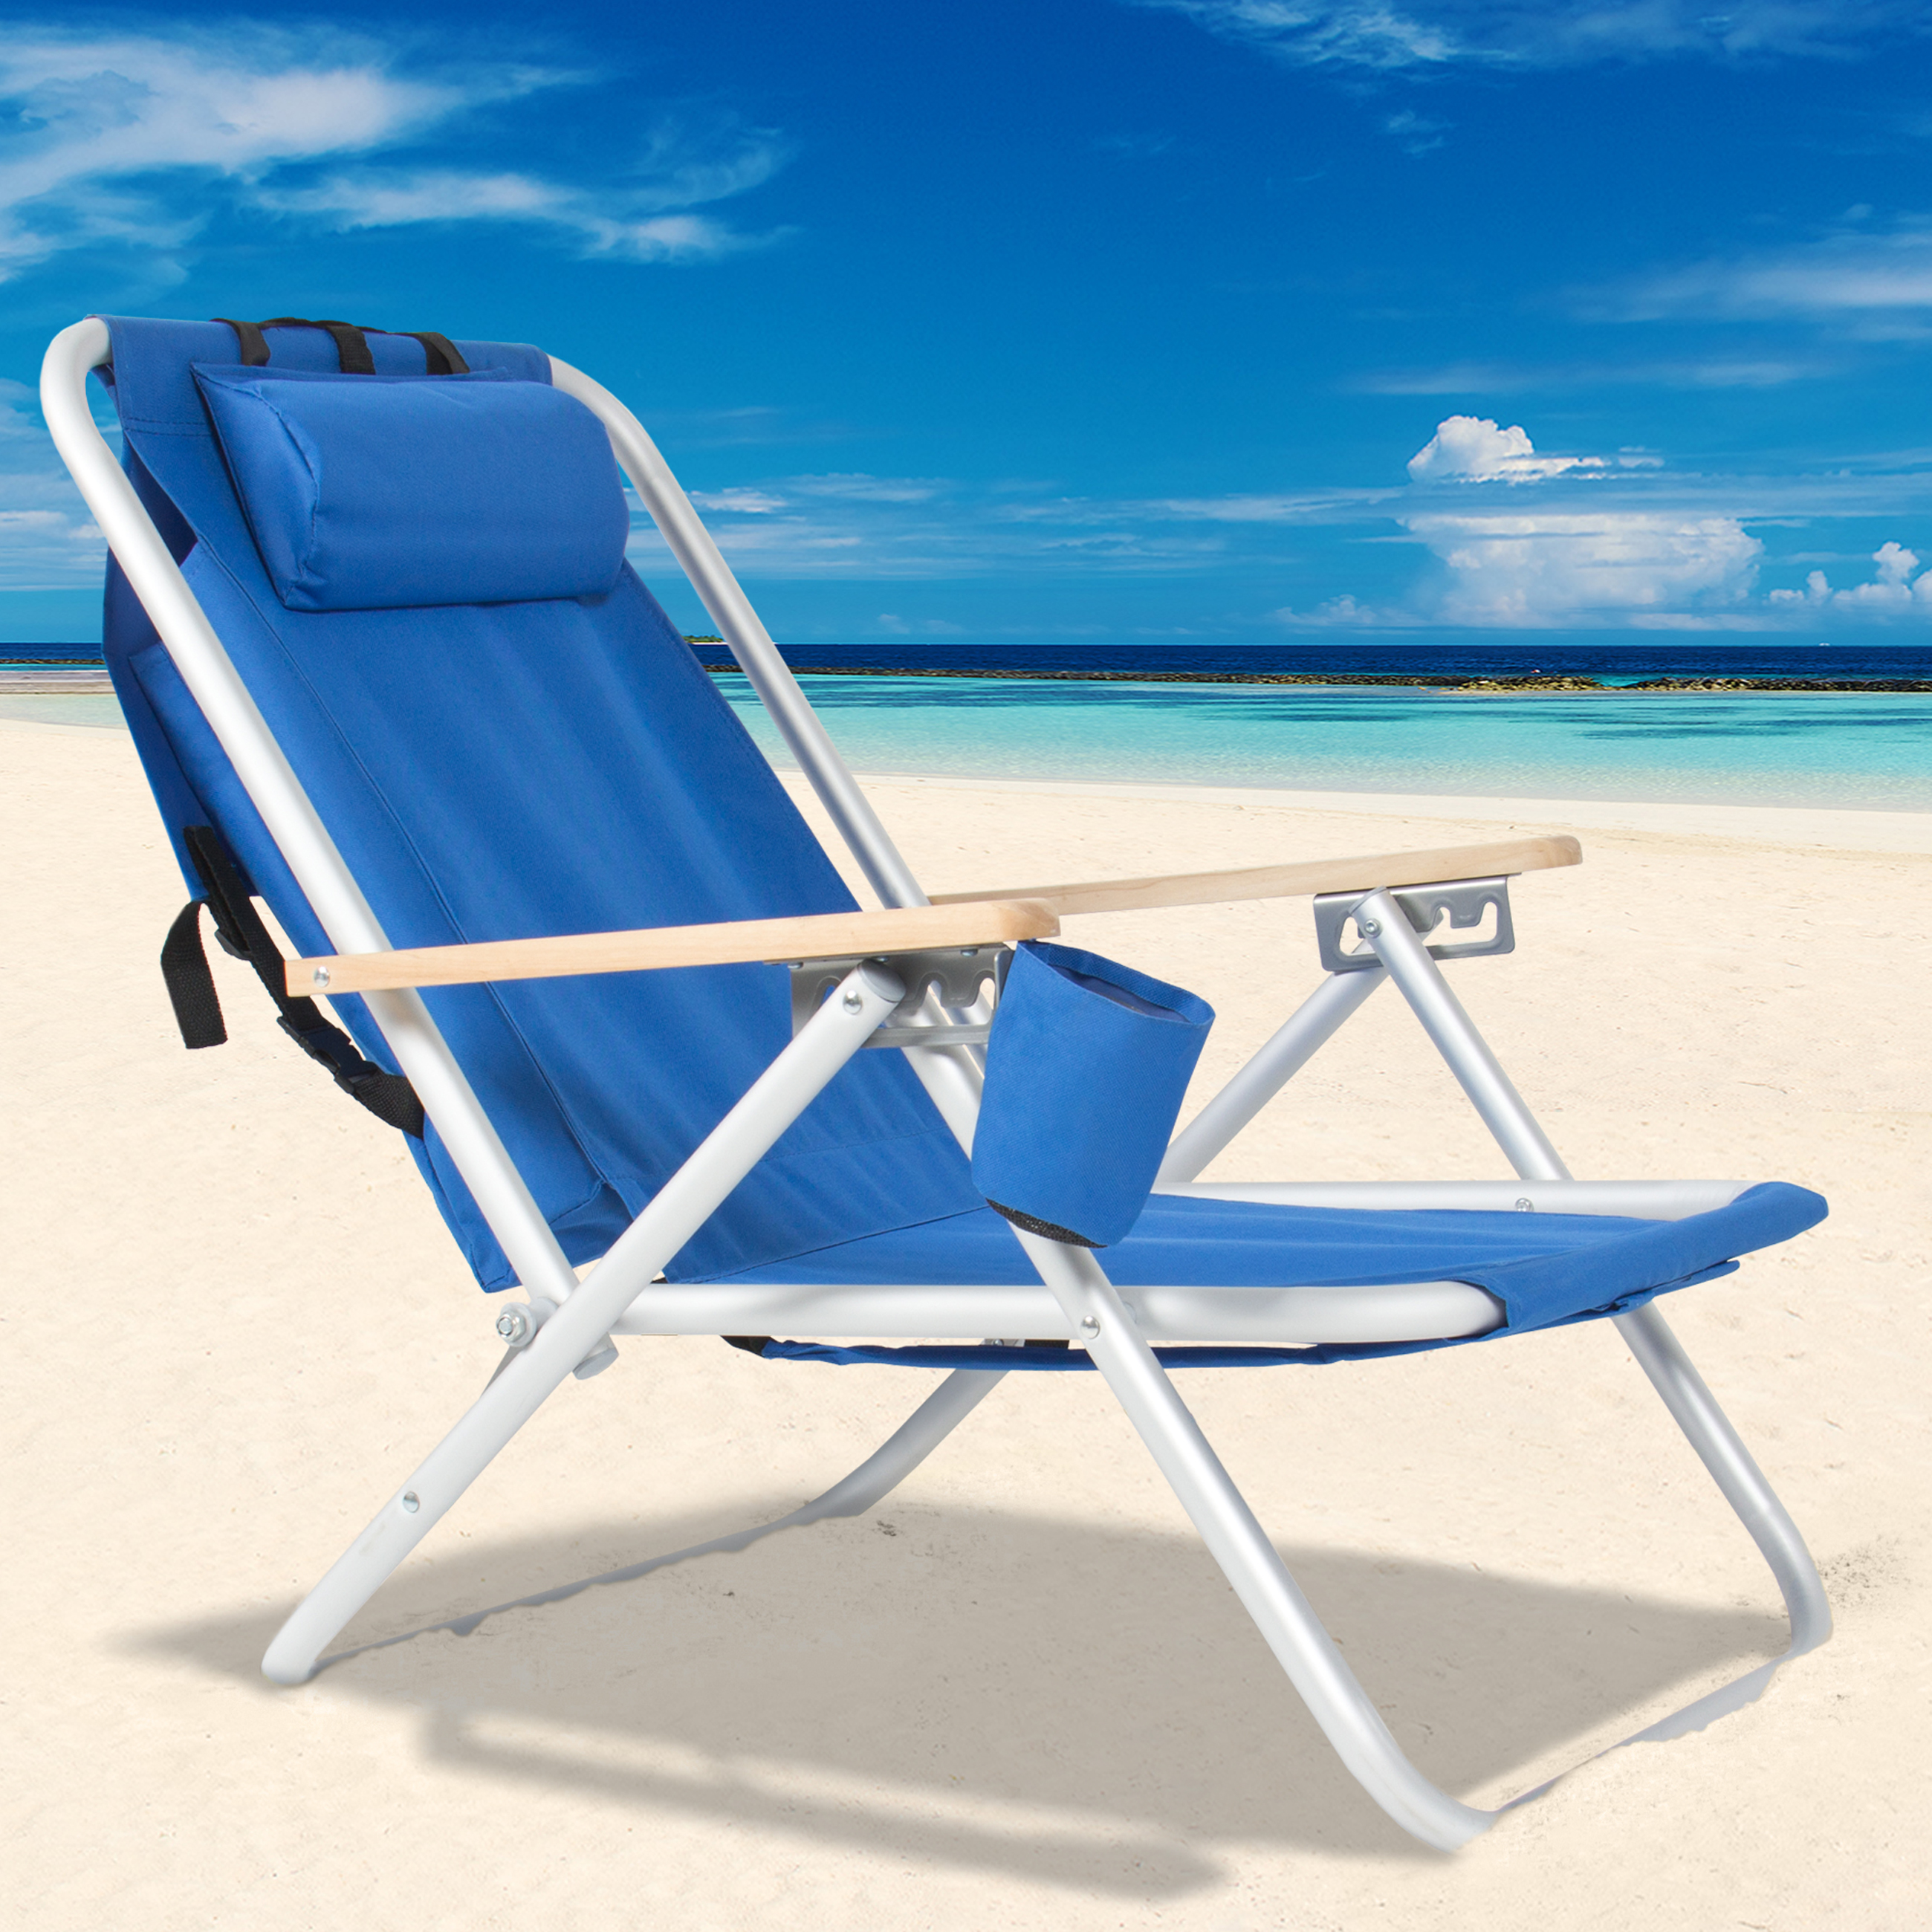 Details about Backpack Beach Chair Folding Portable Chair Blue Solid  Construction Camping New